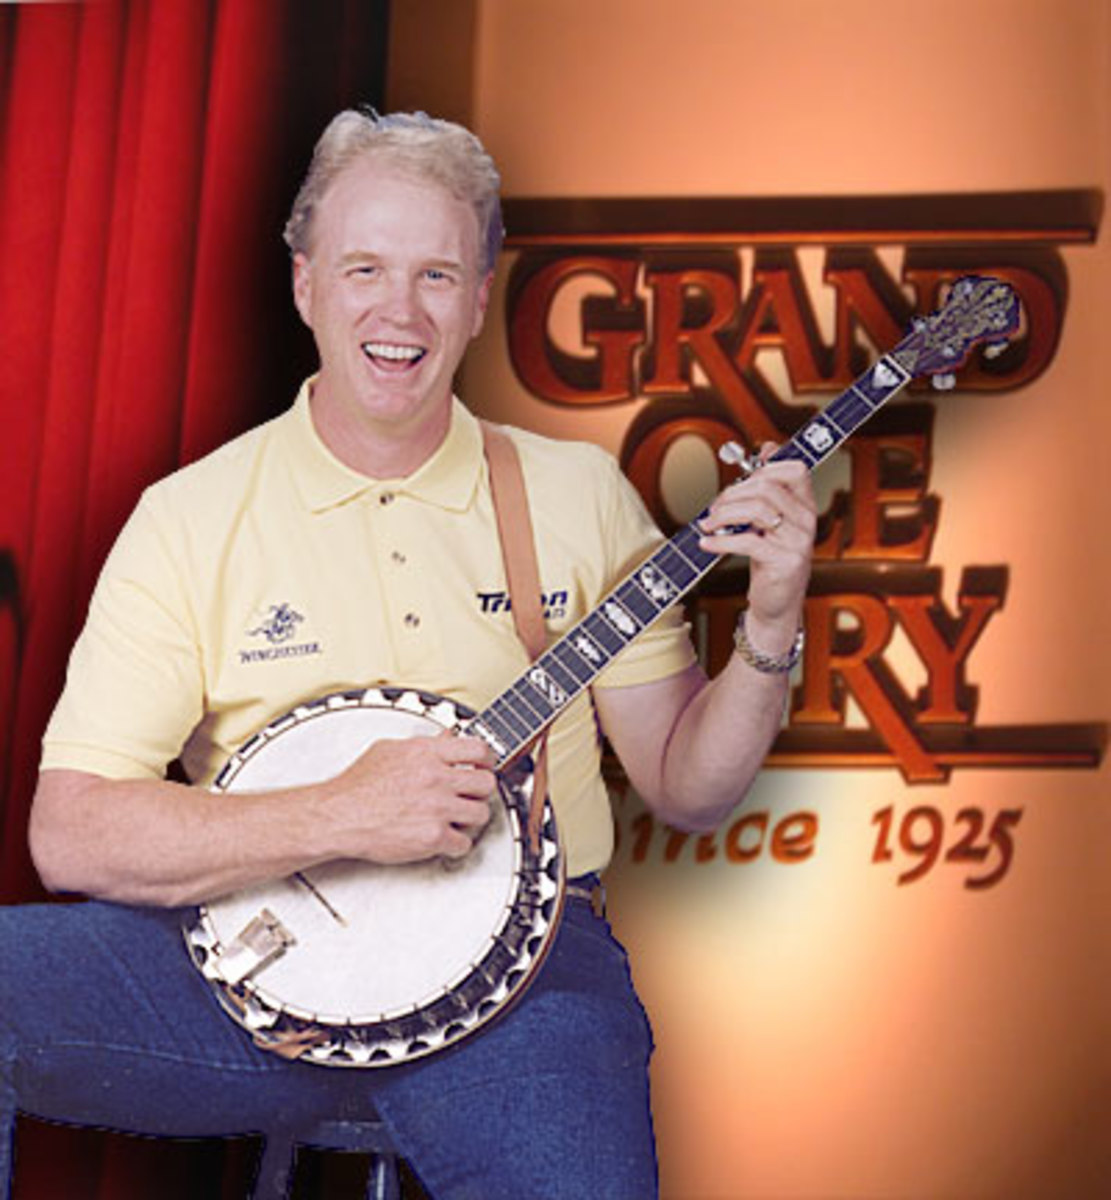 Mike Snider: A-Pickin'-and-a-Grinnin' -- The Banjo Playing Comedian